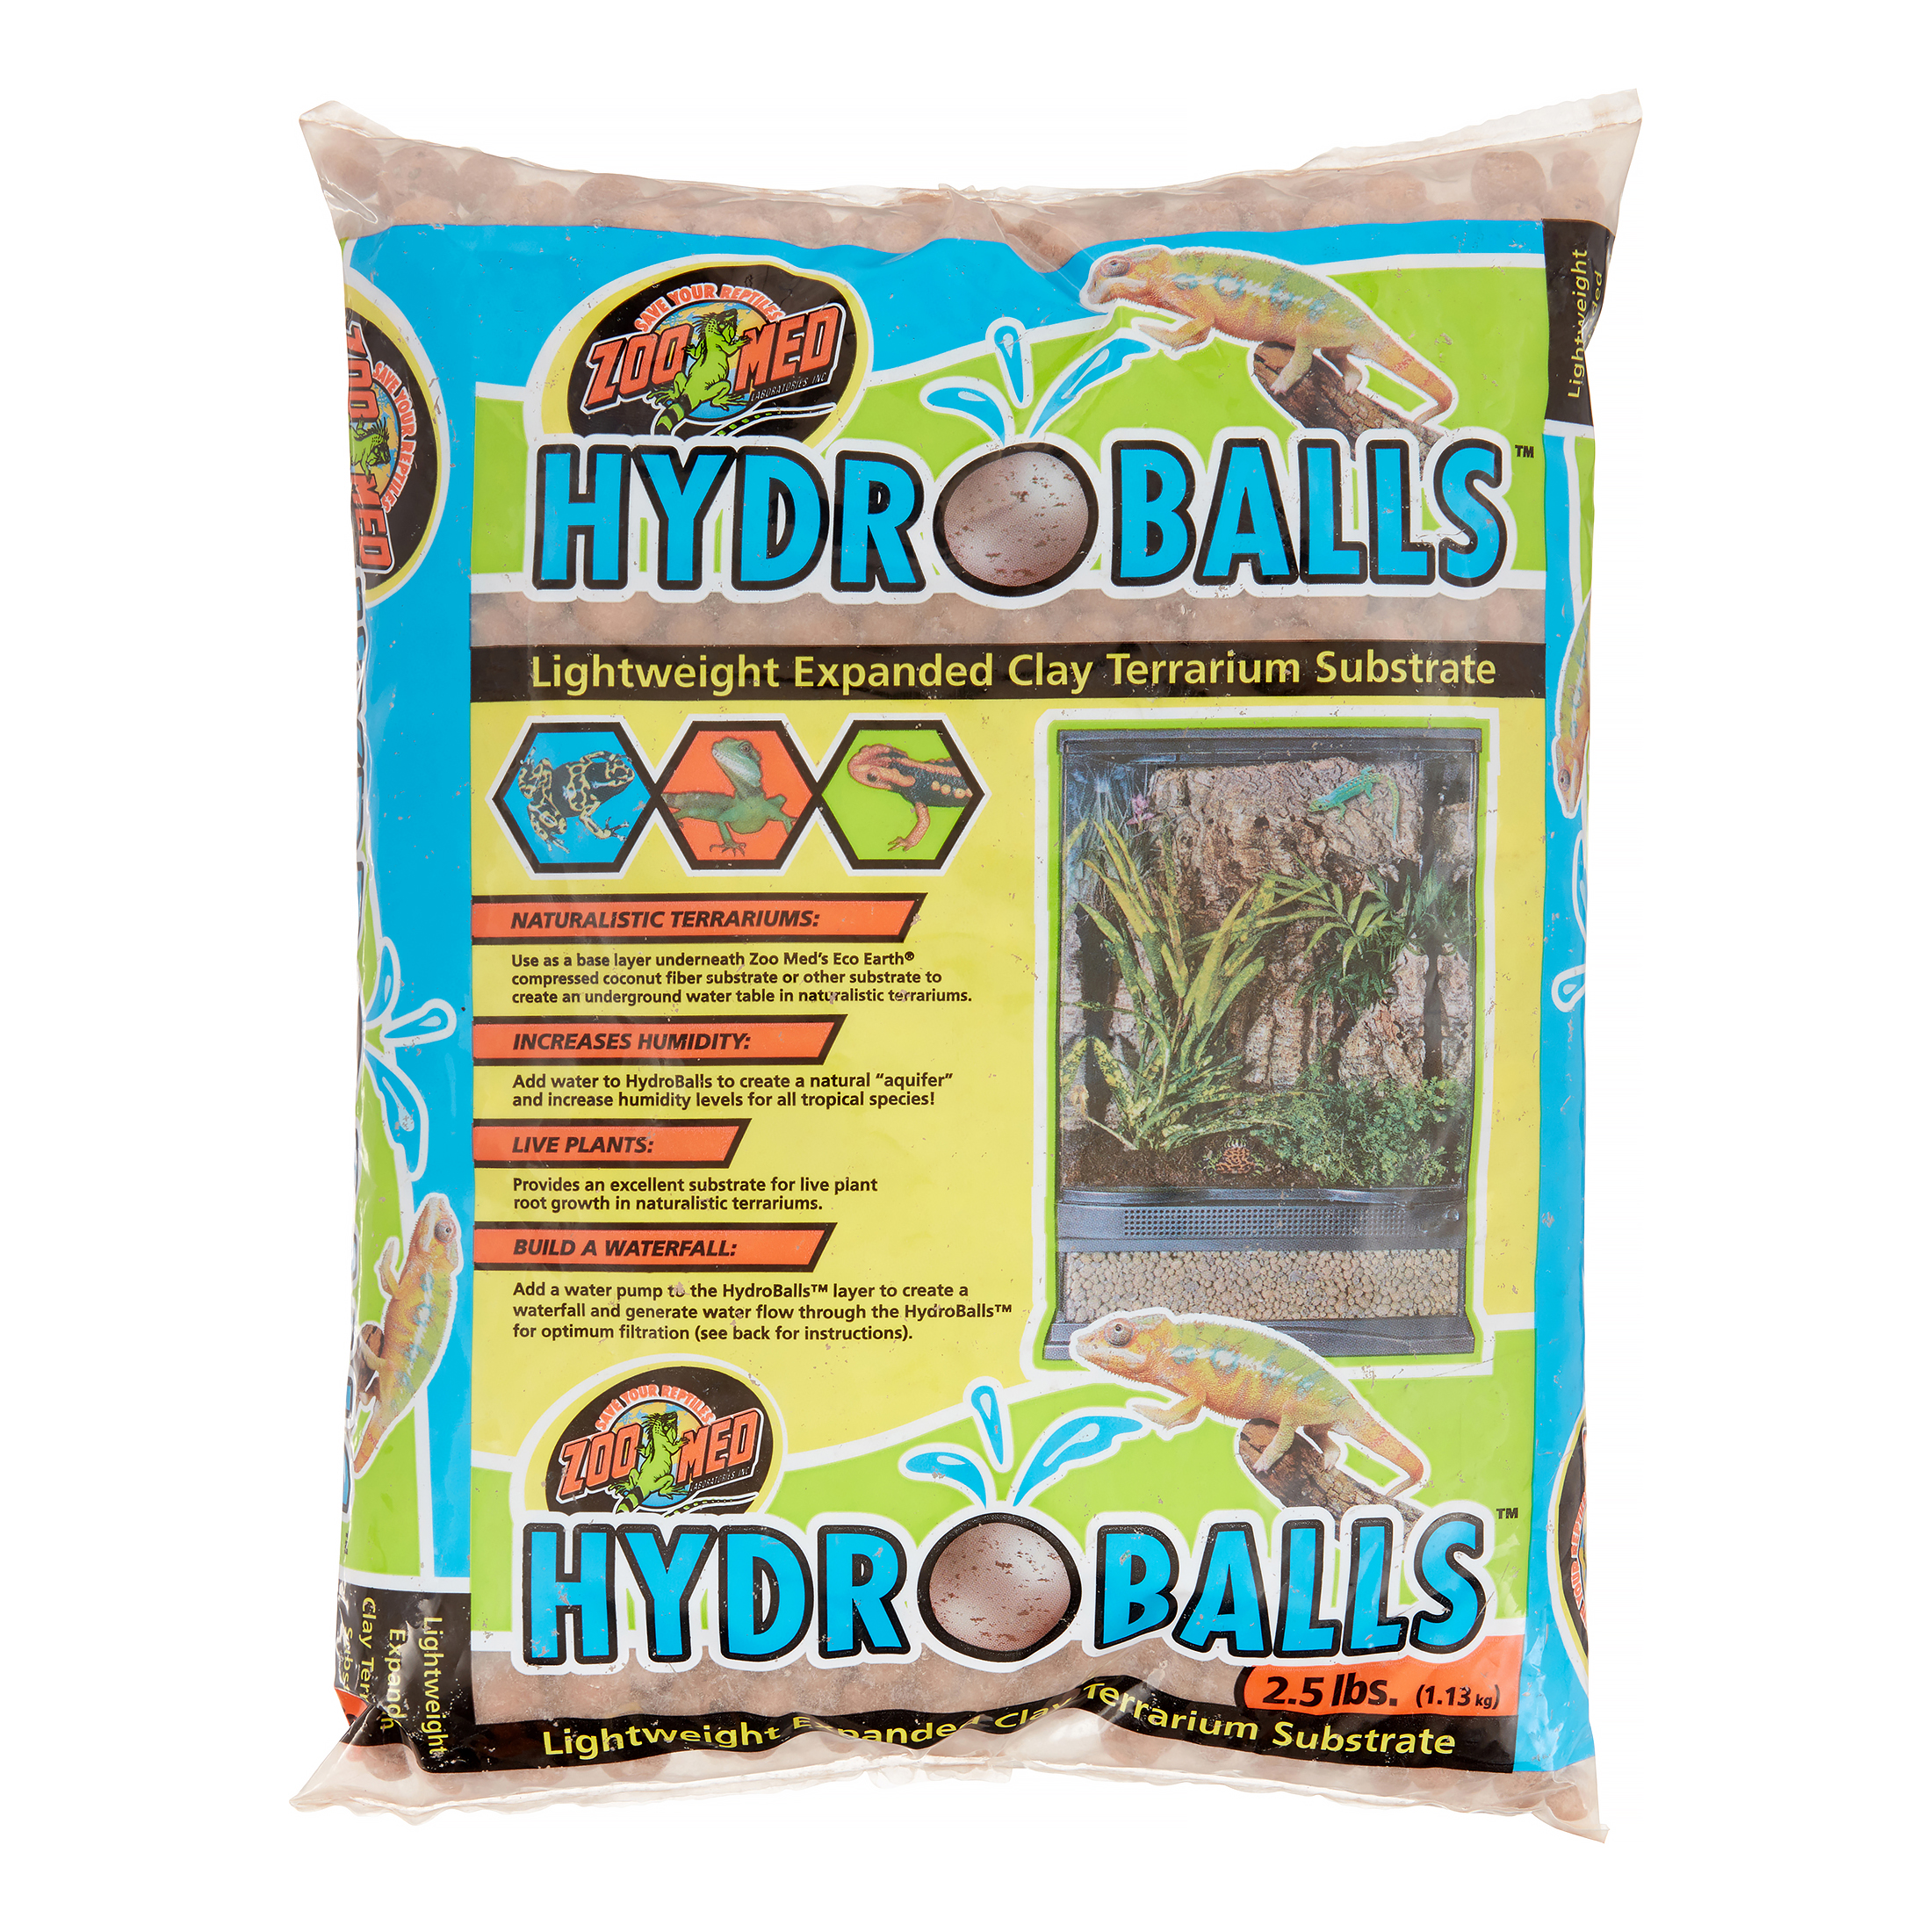 Zoo Med HydroBalls Expanded Clay Terrarium Substrate, 2.5 Lb